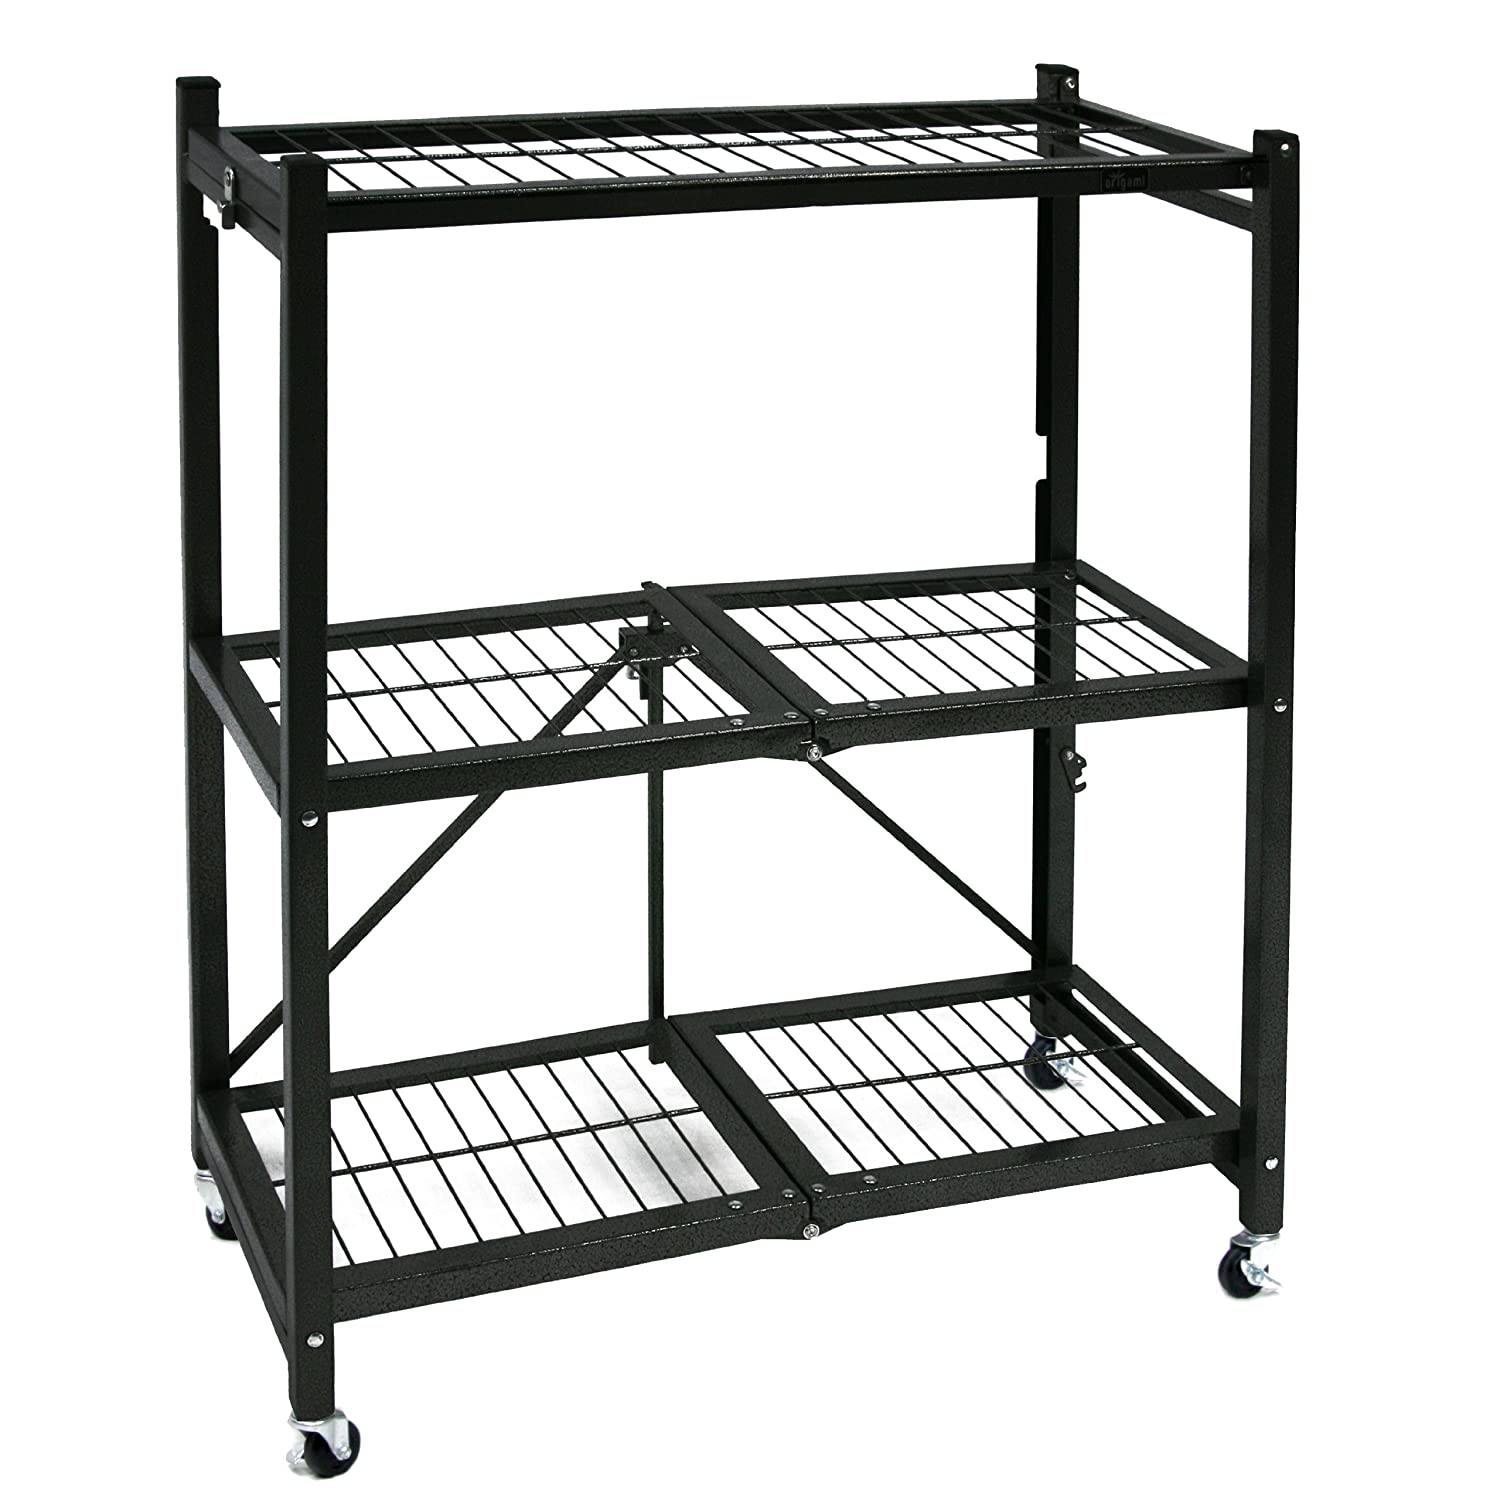 Incroyable Origami R4 01W General Purpose 3 Shelf Steel Collapsable Storage Rack With  Wheels, Medium   Garage Storage And Organization Products   Amazon.com